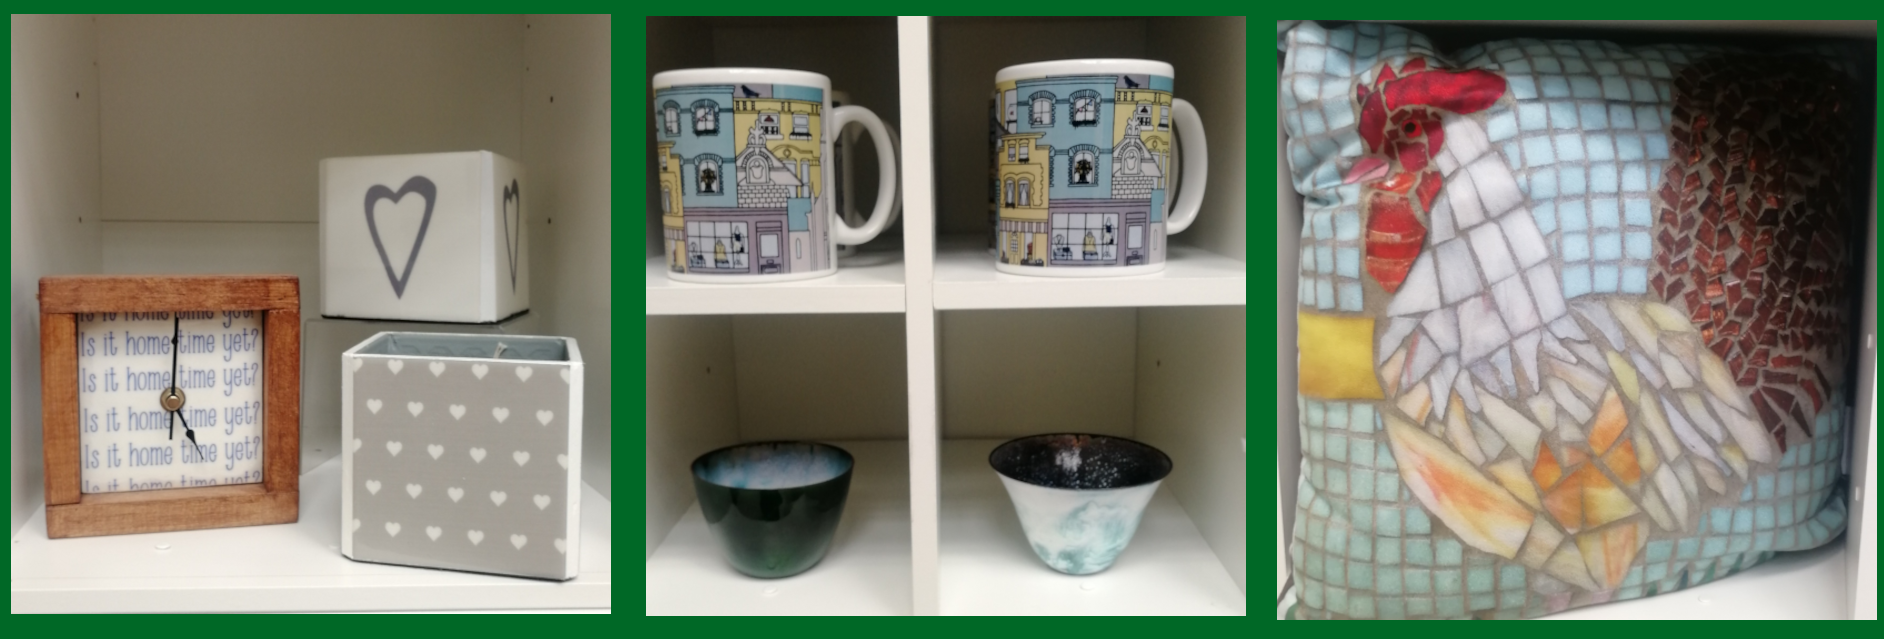 three square images of products for sale in our shop - a clock, two mugs and two small decorative bowls, and a cushion with a hen on it.